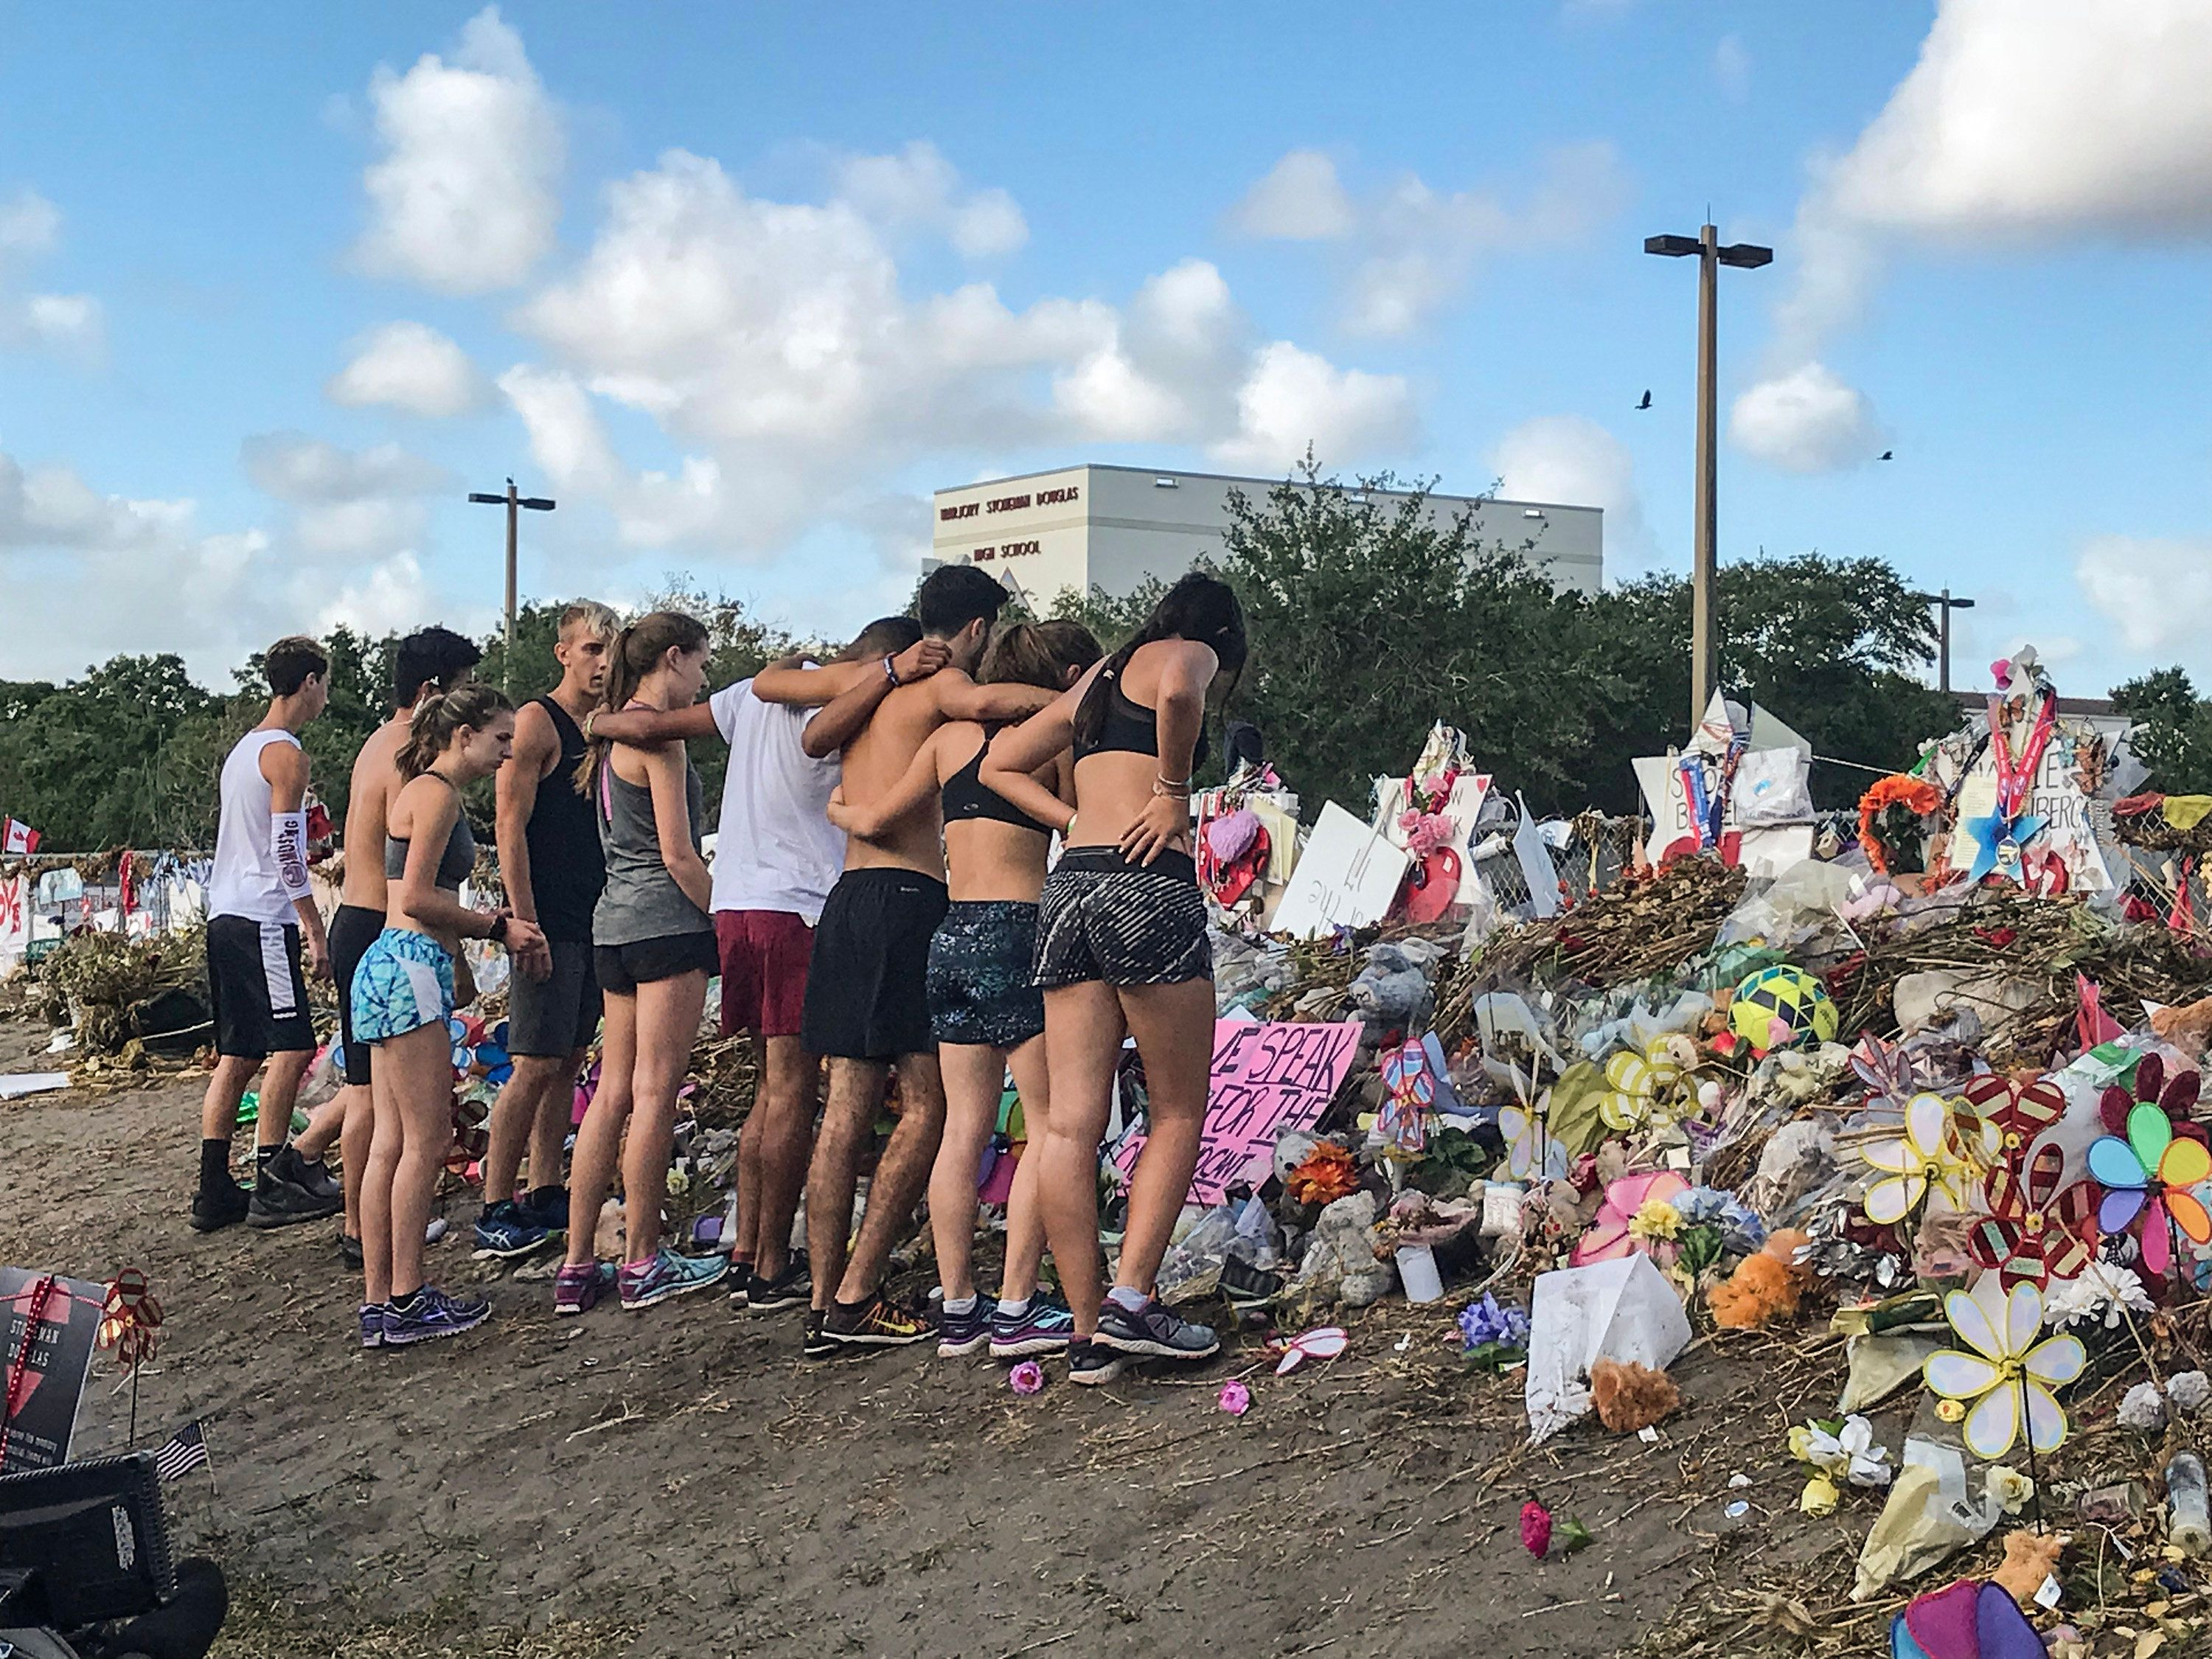 Students from Marjory Stoneman Douglas High School's cross country team stop by the makeshift memorials in front of the school on March 28, 2018. (Phillip Valys/Sun Sentinel/TNS via Getty Images)